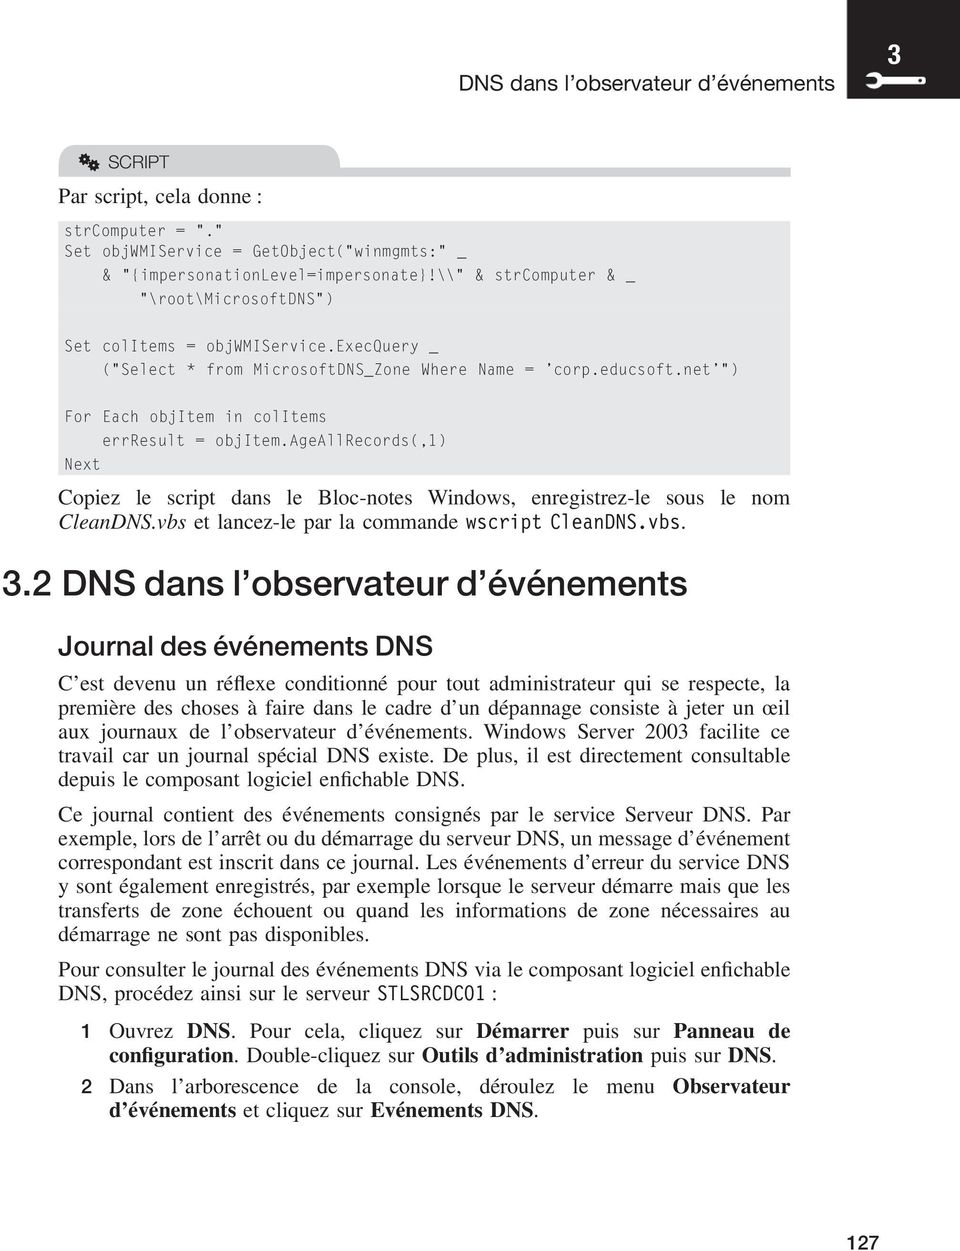 ageallrecords(,1) Next Copiez le script dans le Bloc-notes Windows, enregistrez-le sous le nom CleanDNS.vbs et lancez-le par la commande wscript CleanDNS.vbs. 3.